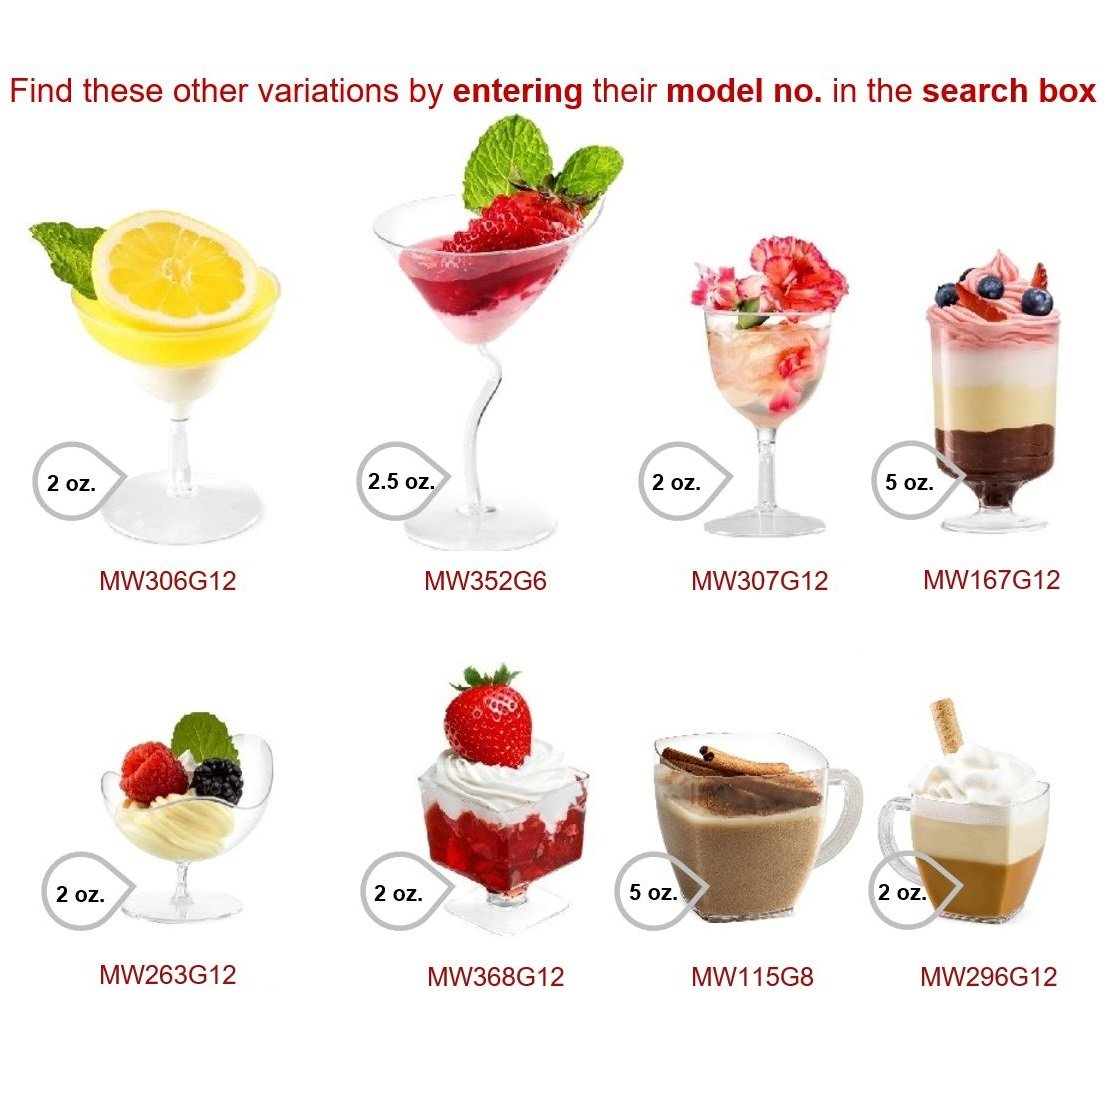 Candy Dishes 24 Pack Pinch Prep Dipping Bowls Mini Wonders Five Star Shape Disposable Small Bowls for Parties 2.6 oz Clear Plastic Dessert Bowls Plates Condiment Sauce Custard Cups